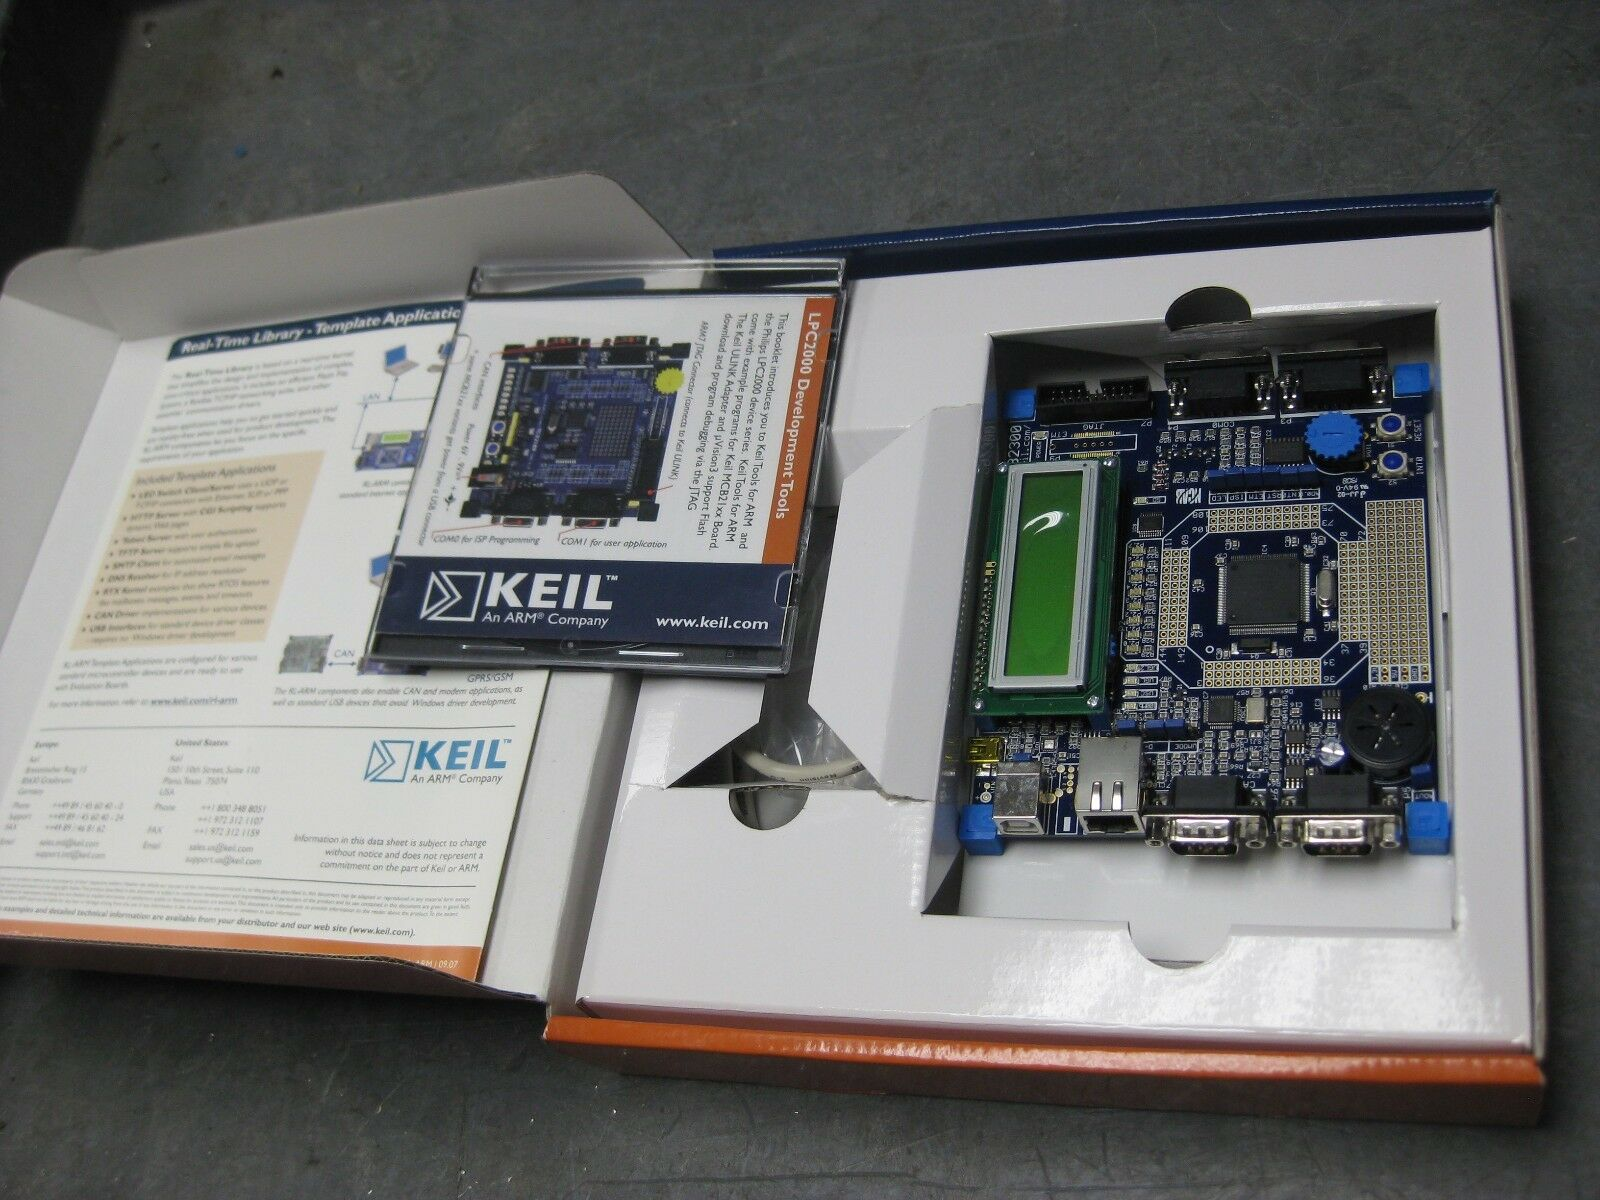 KEIL MCB2370 Evaluation Board for Lpc2370